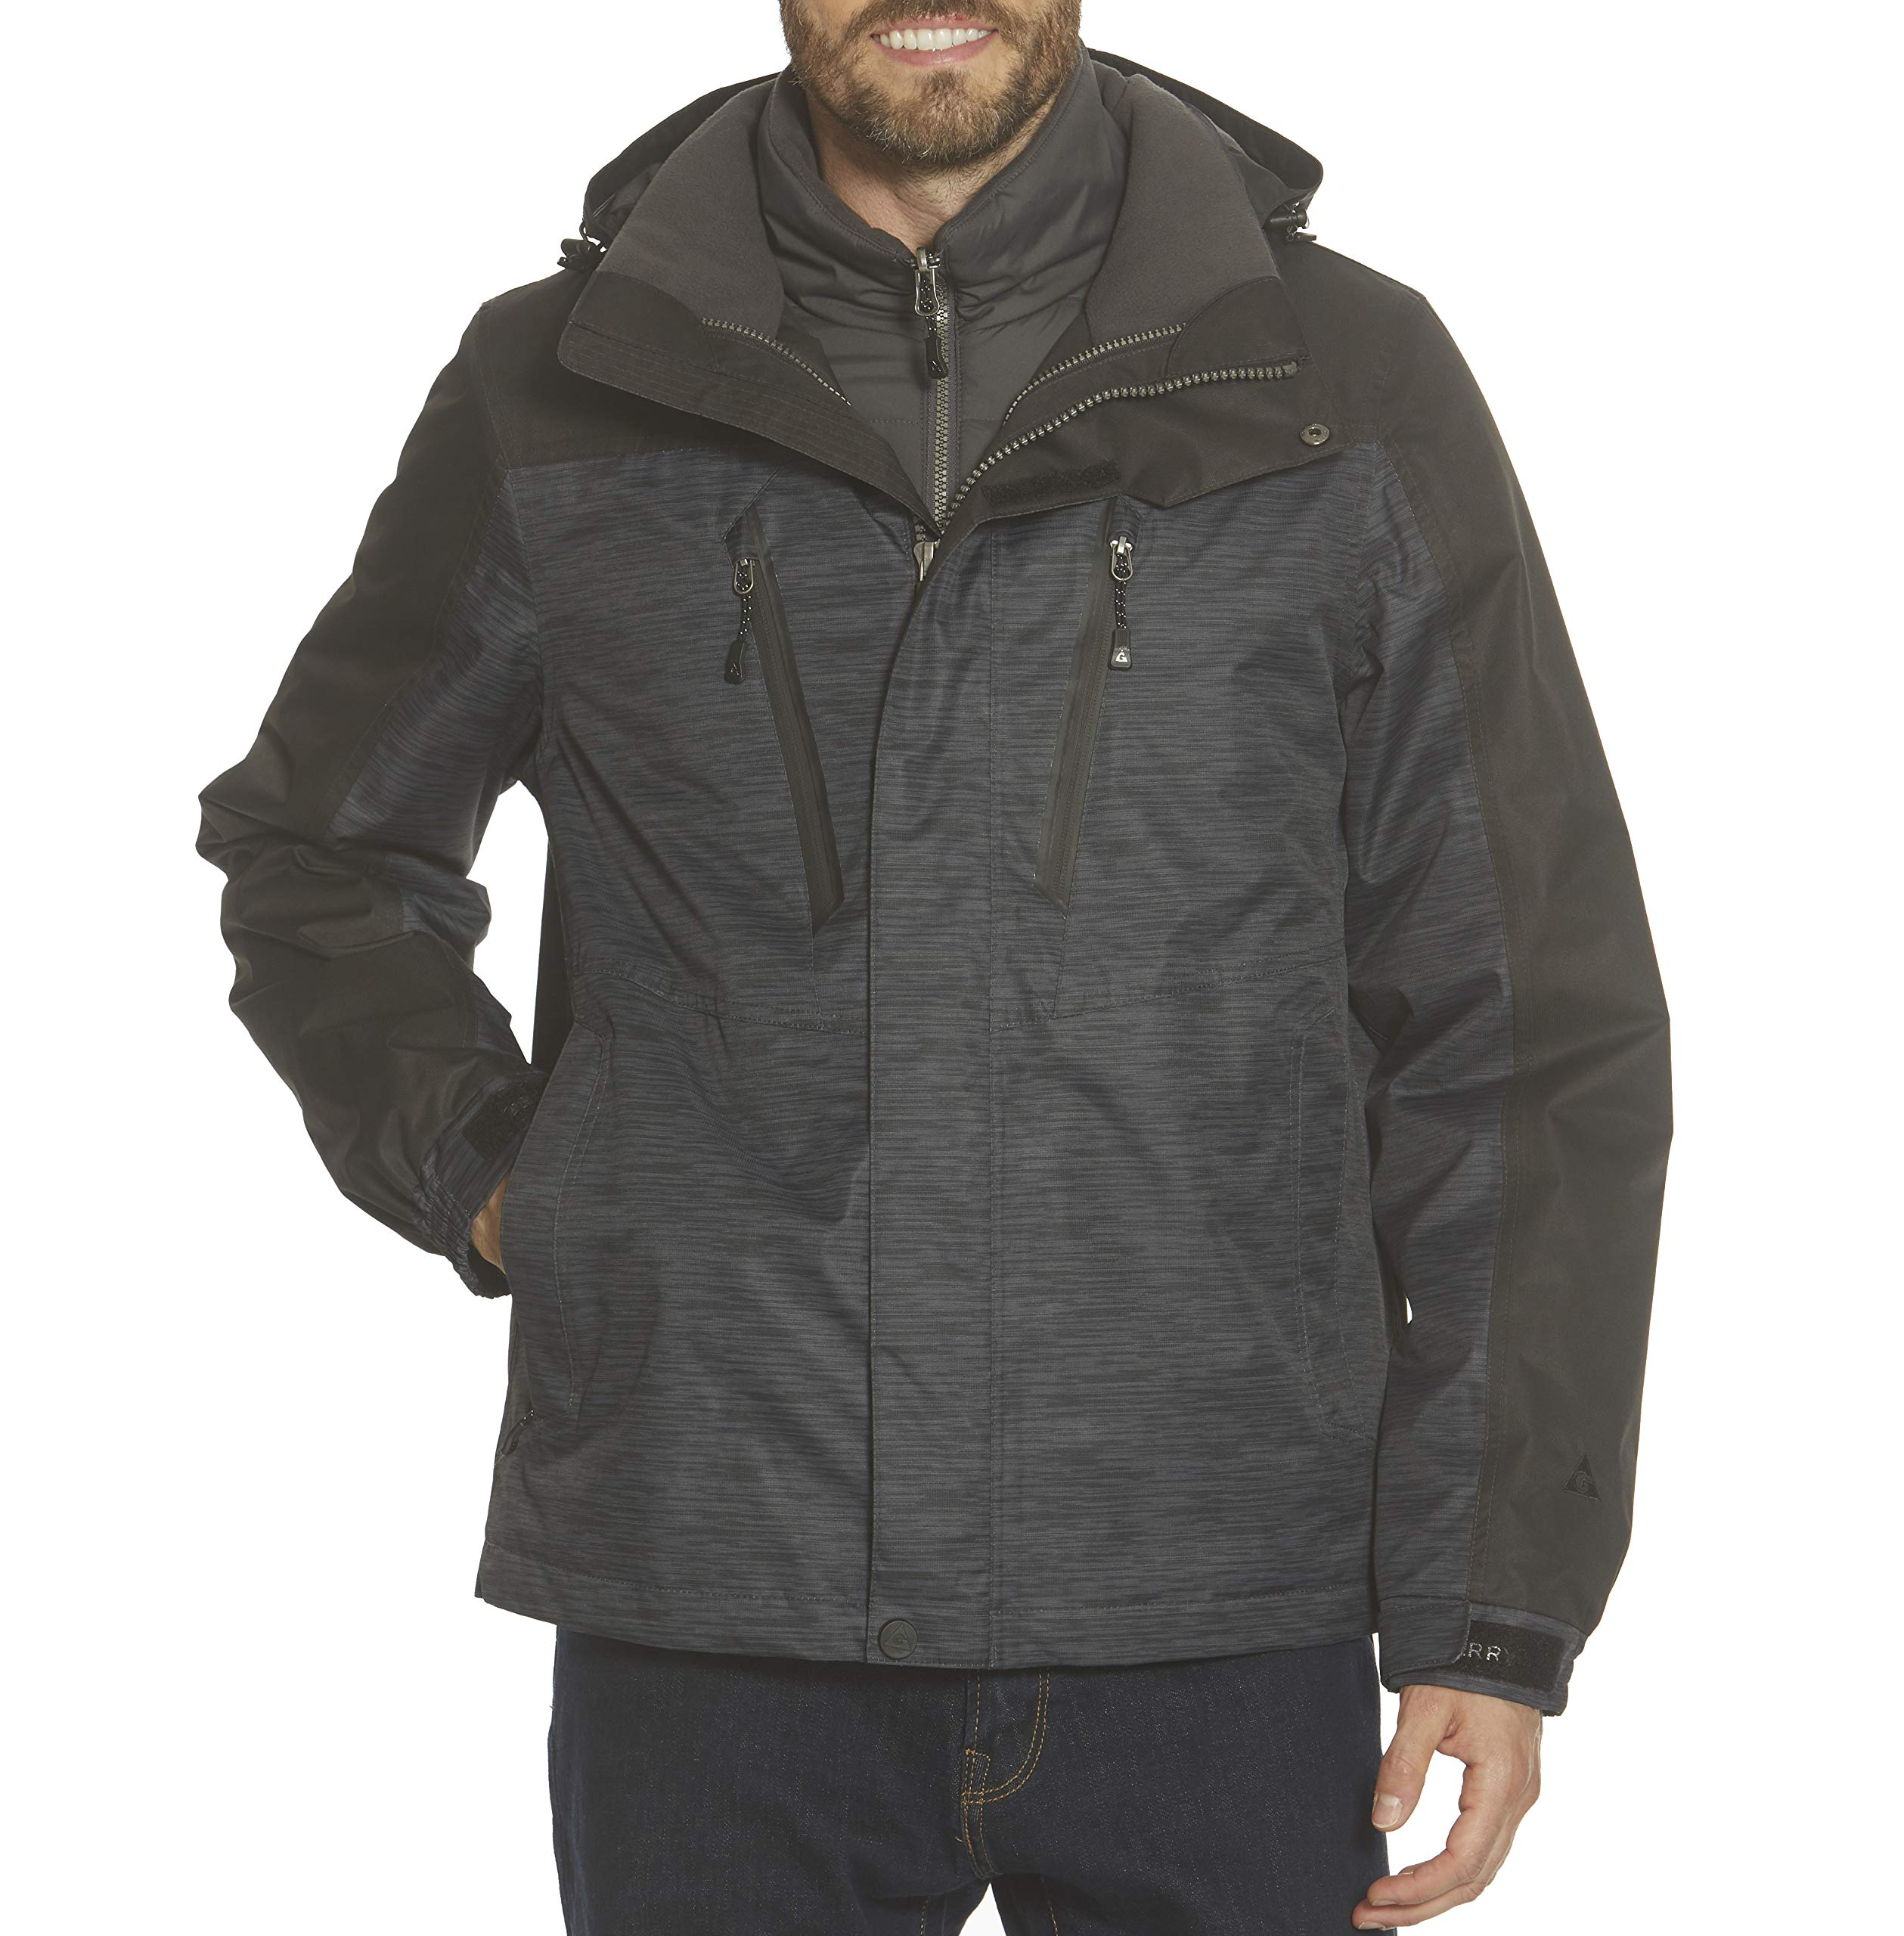 Gerry Mens Jacket, Crusade System Water Resistant 3 in 1 Coats for Men, High-Performance Insulation Mens Winter Coat